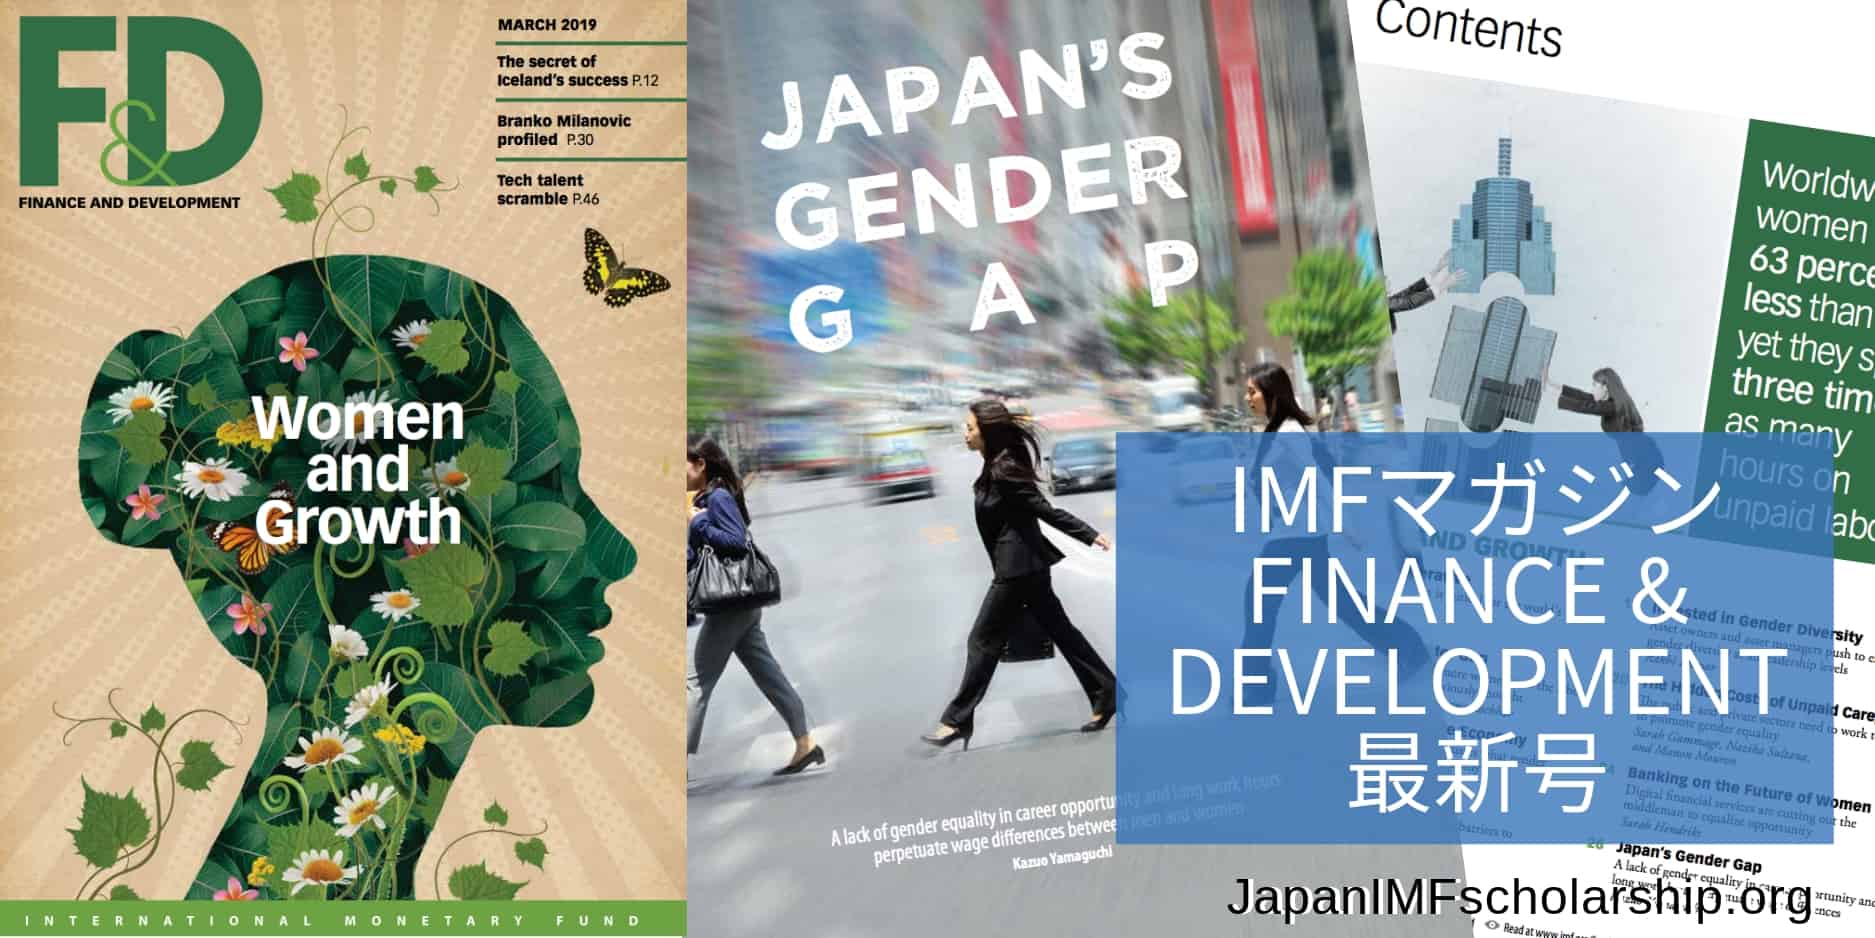 jisp web-fb imf magazine finance and development women and growth march 2019